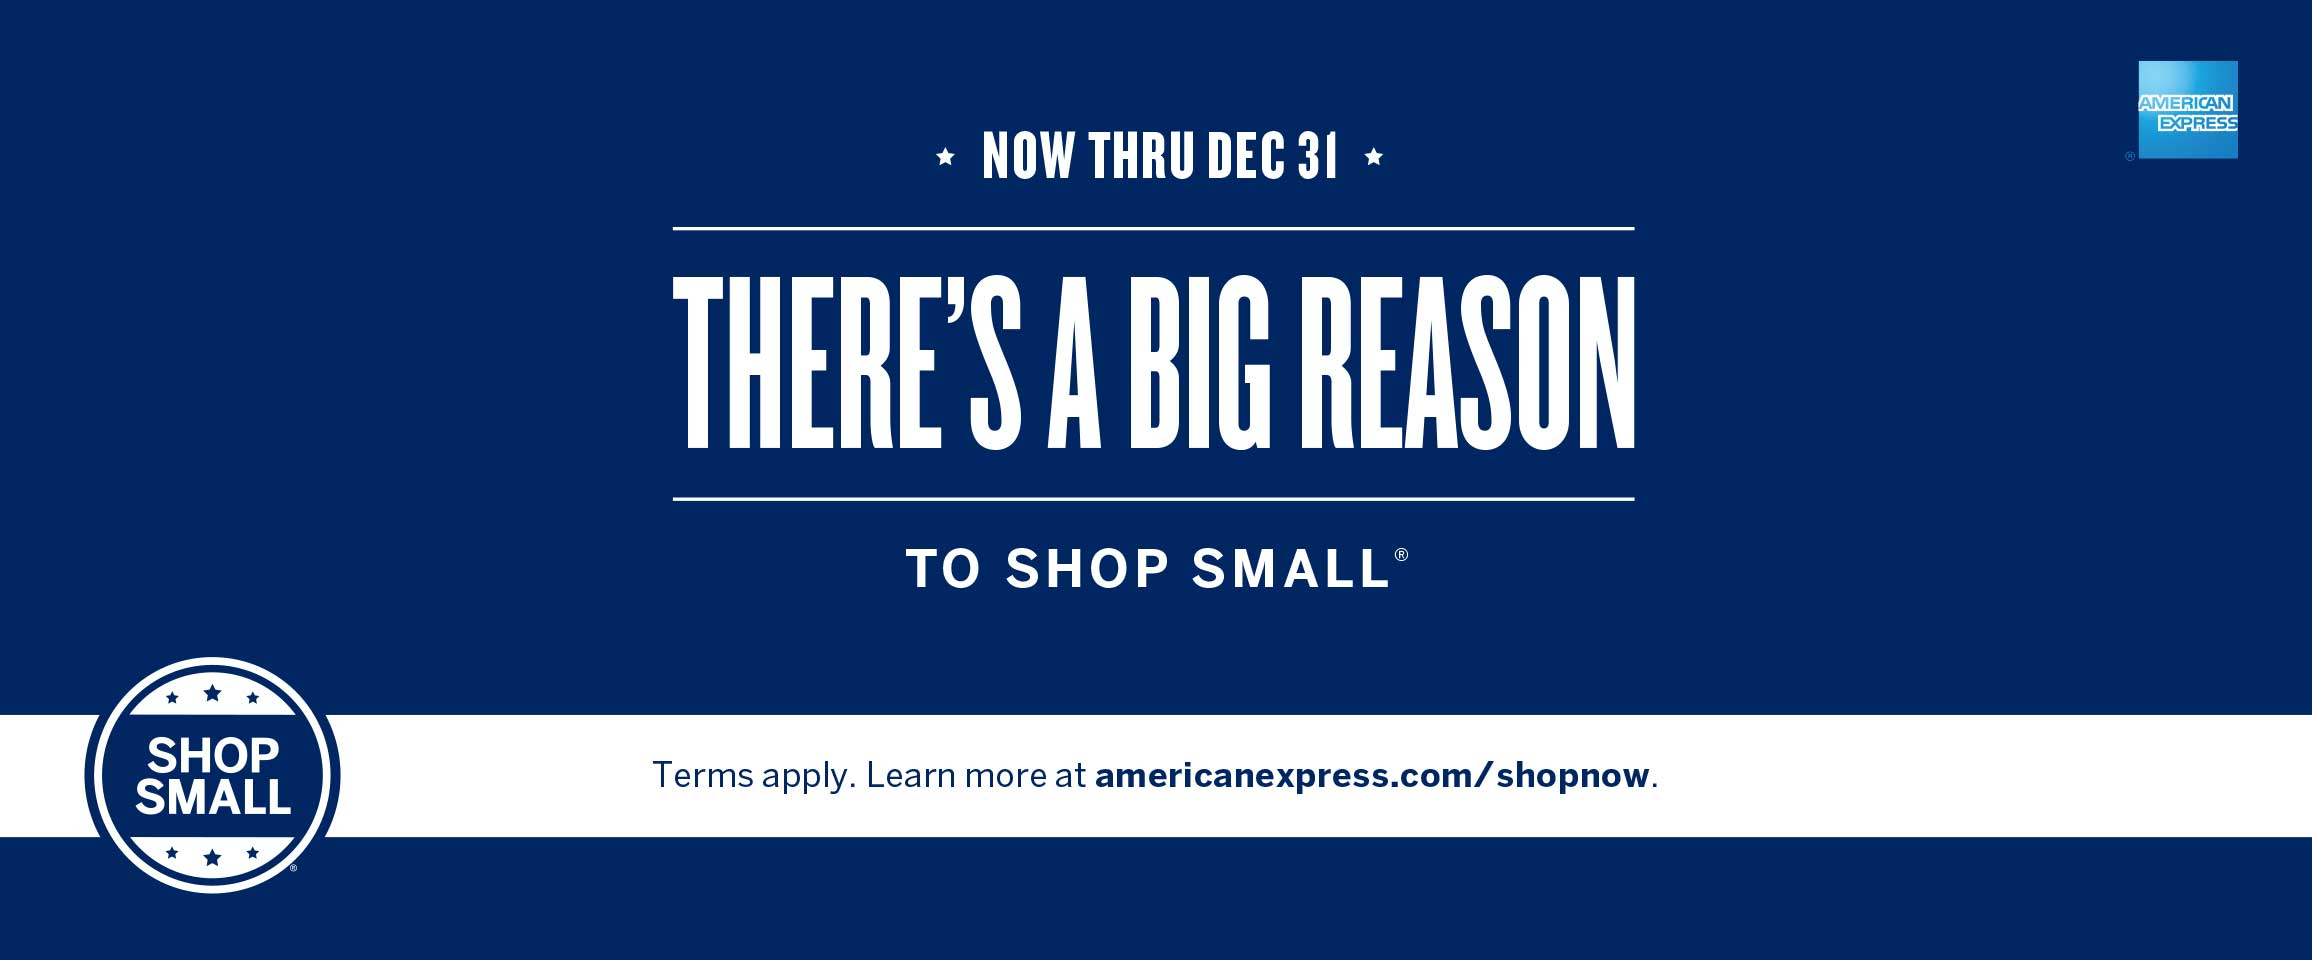 American express is giving small business owners free marketing in the shop small studio you can even customize marketing materials for your social pages website and storefront in just a few minutes for free colourmoves